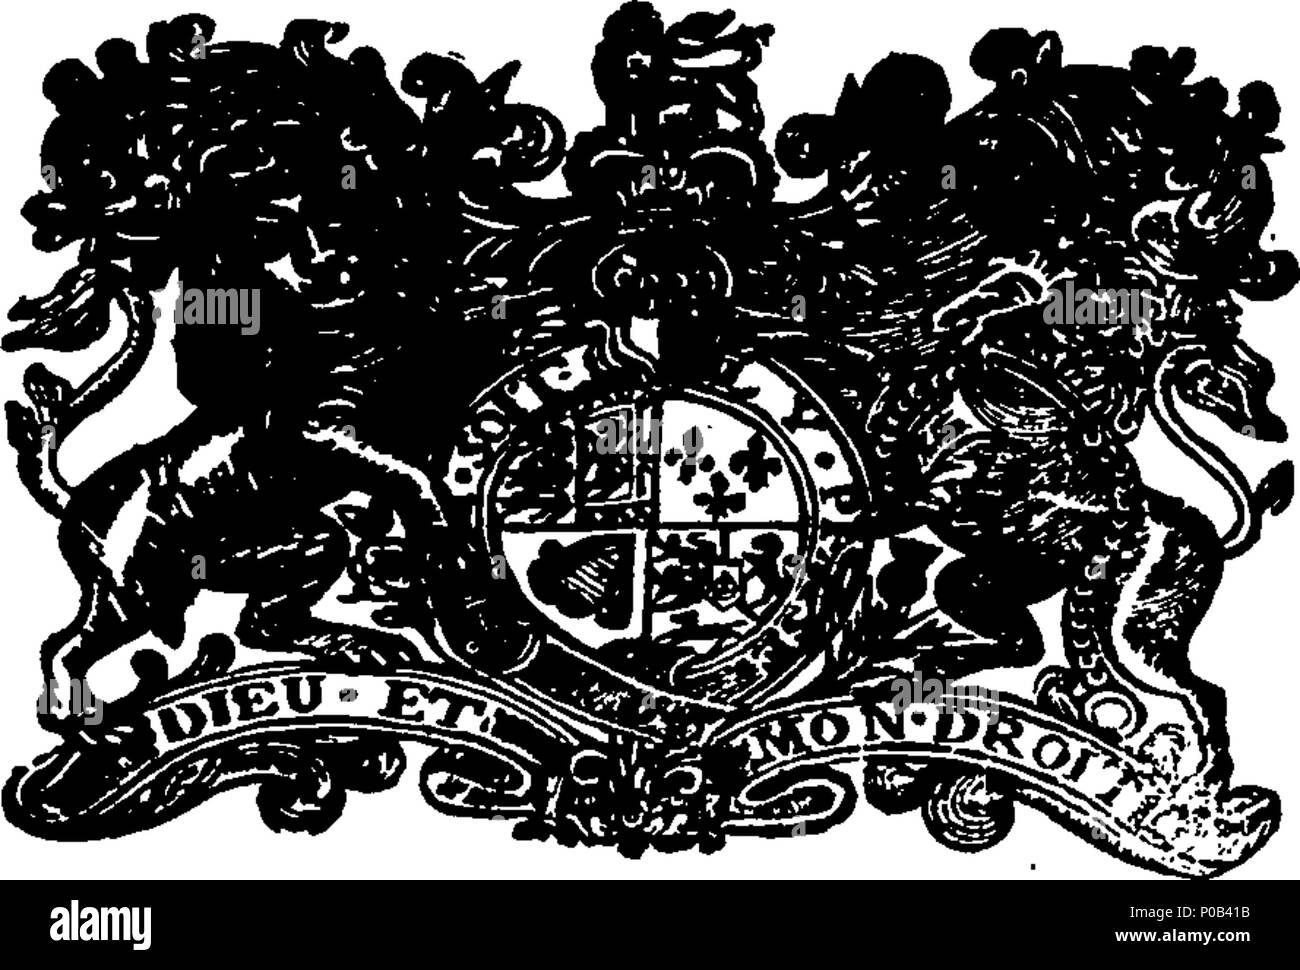 . English: Fleuron from book: An act for the more effectual execution of orders of the courts of justice, for giving and quieting possessions; and also, for the more effectually bringing to justice, such persons as shall inlist his Majesty's subjects, to serve as soldiers in foreign service, without licence. 300 An act for the more effectual execution of orders of the courts of justice Fleuron N056304-1 - Stock Image